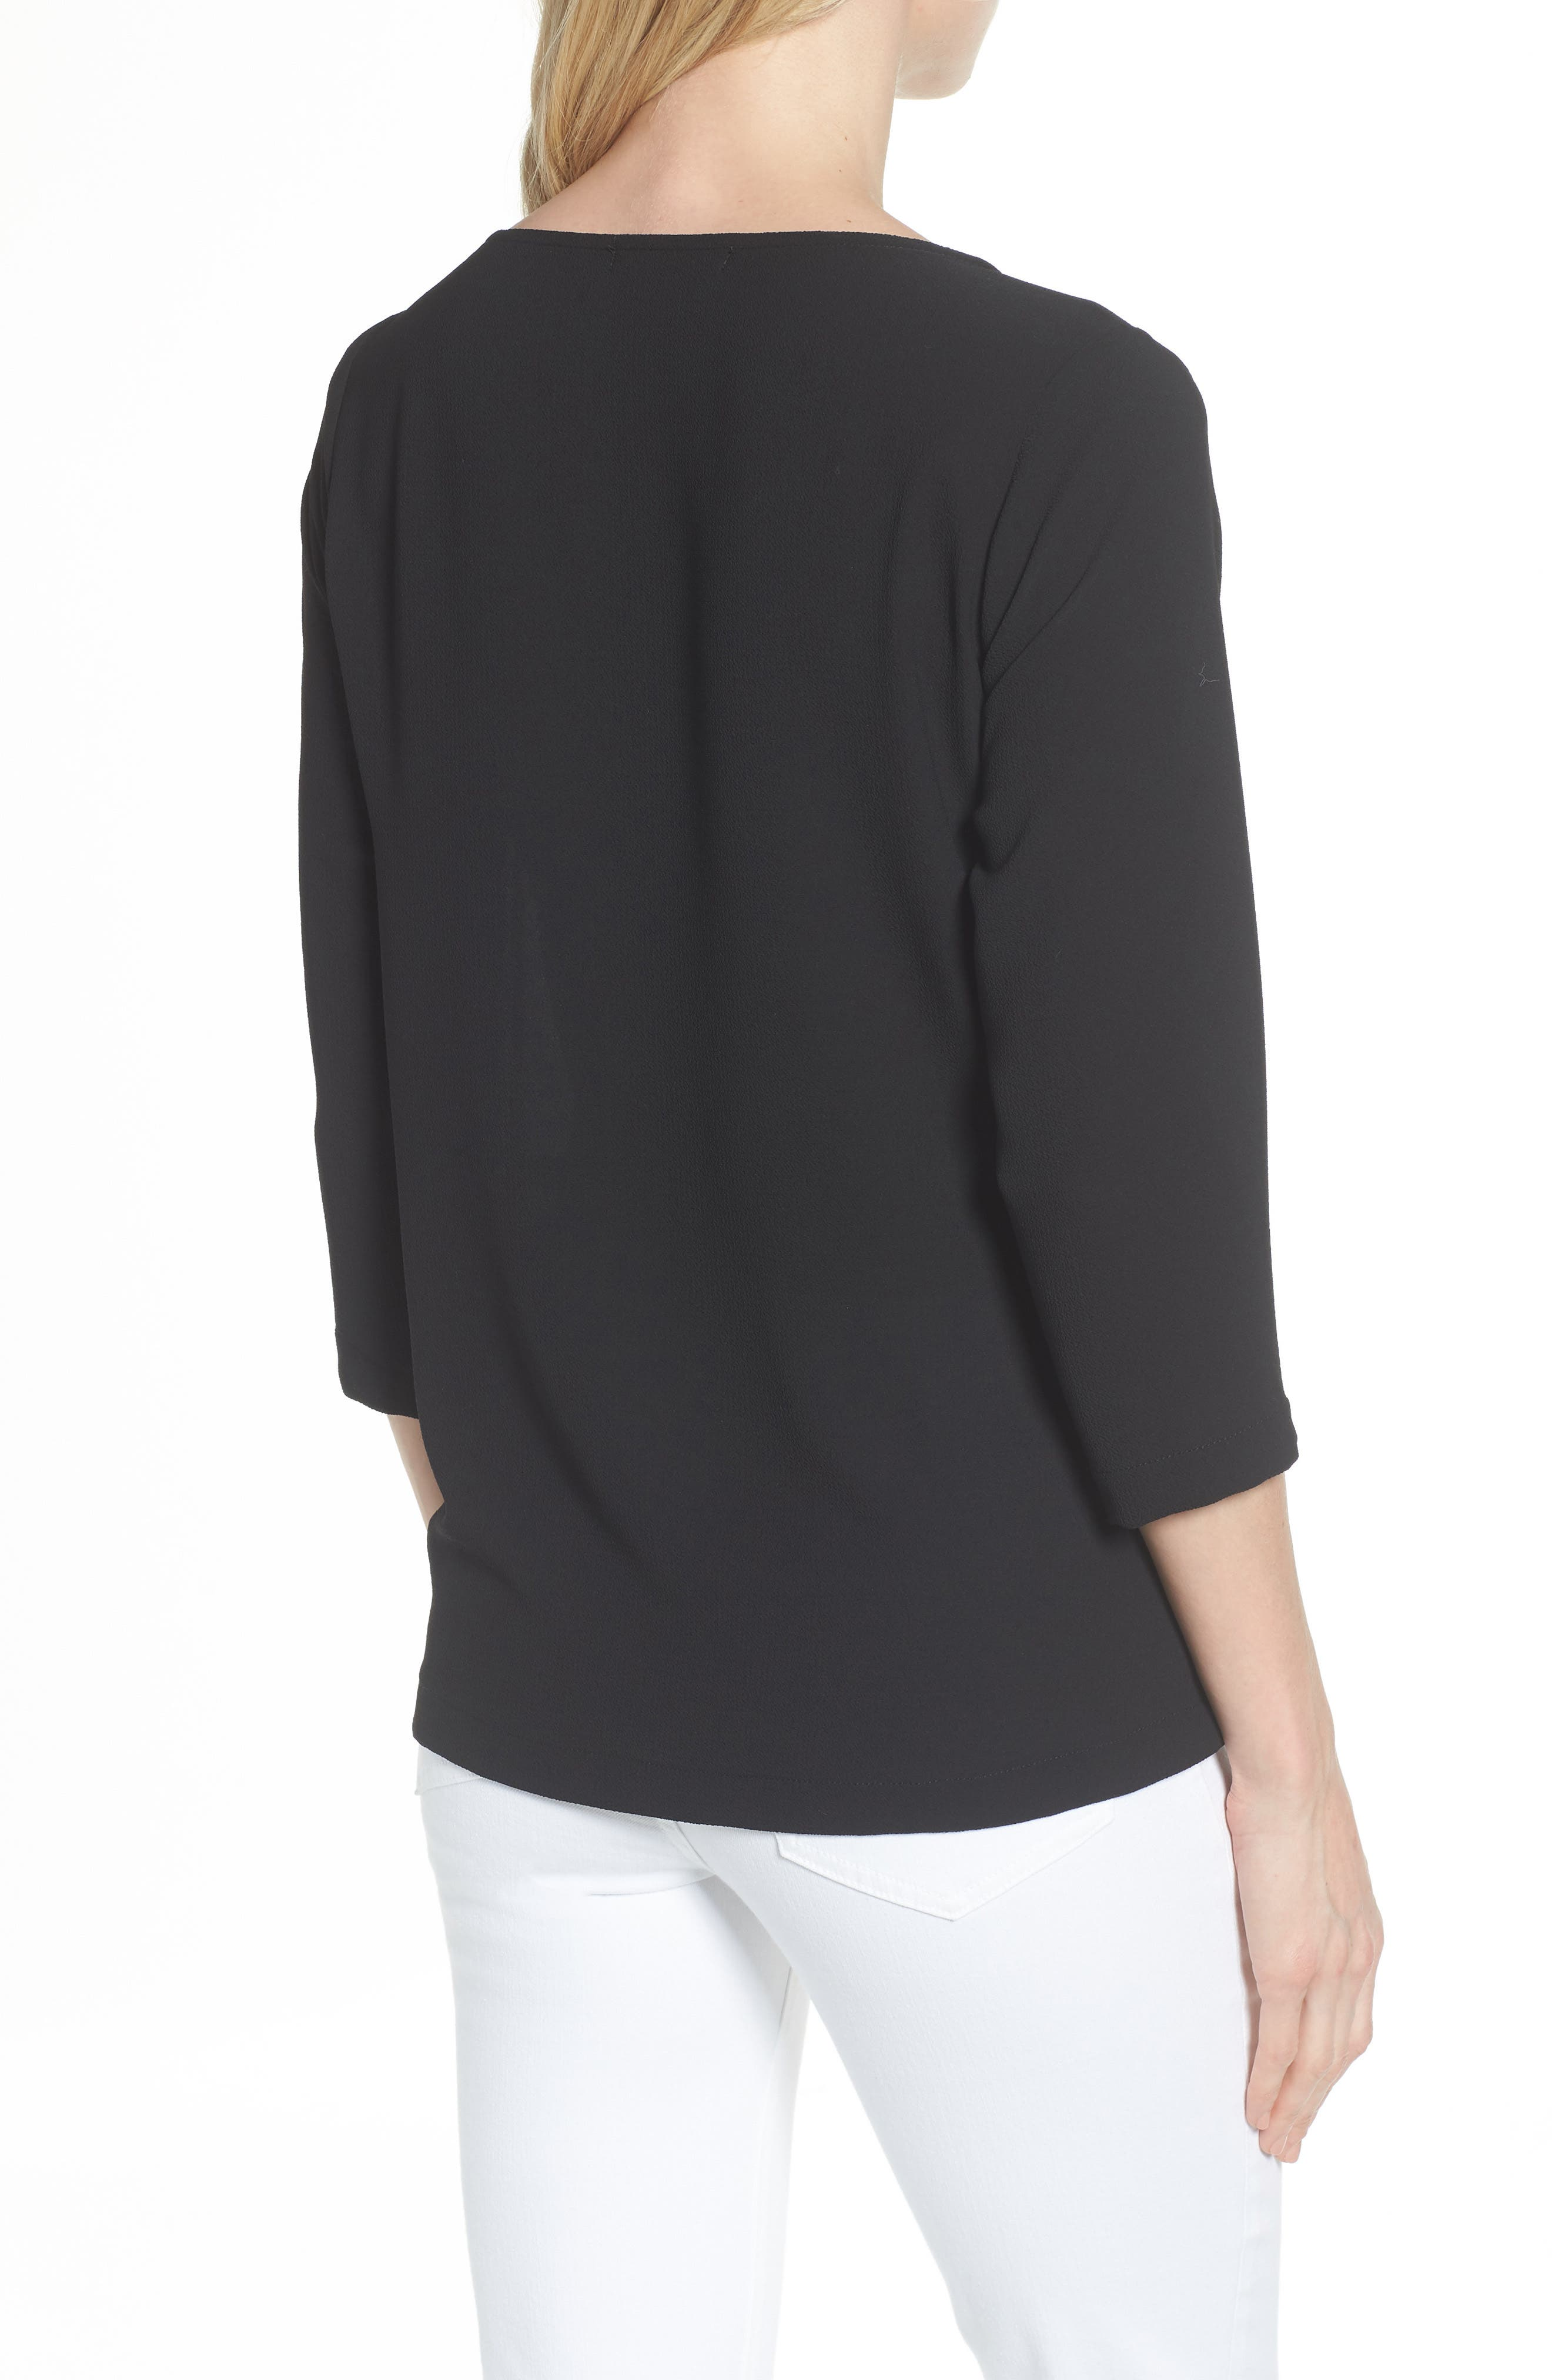 GIBSON,                             Tie Front Crepe Top,                             Alternate thumbnail 2, color,                             001